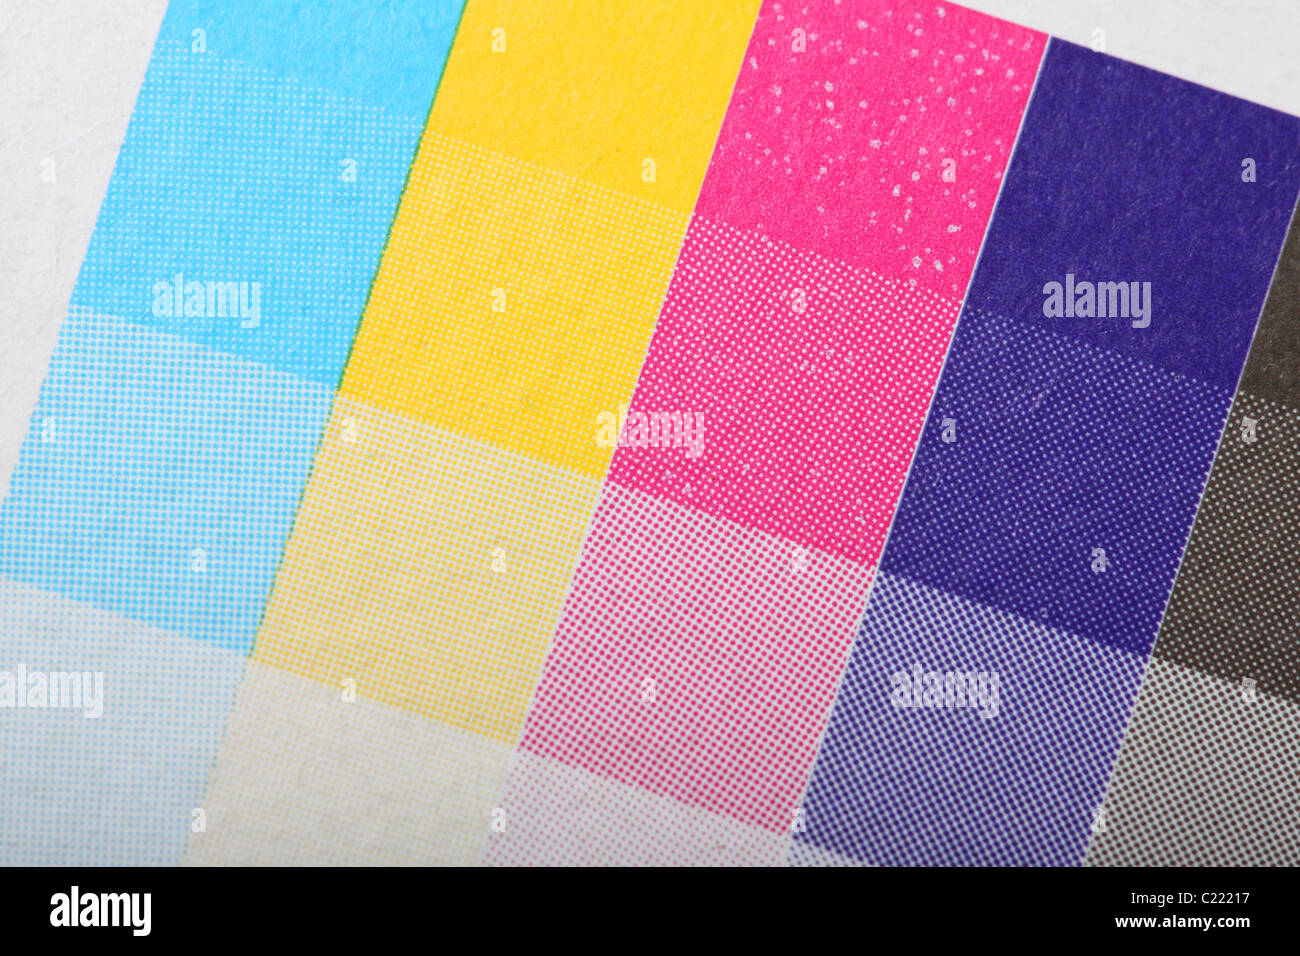 Printers printing CMYK colour test print on packaging four 4 color processing printing - Stock Image